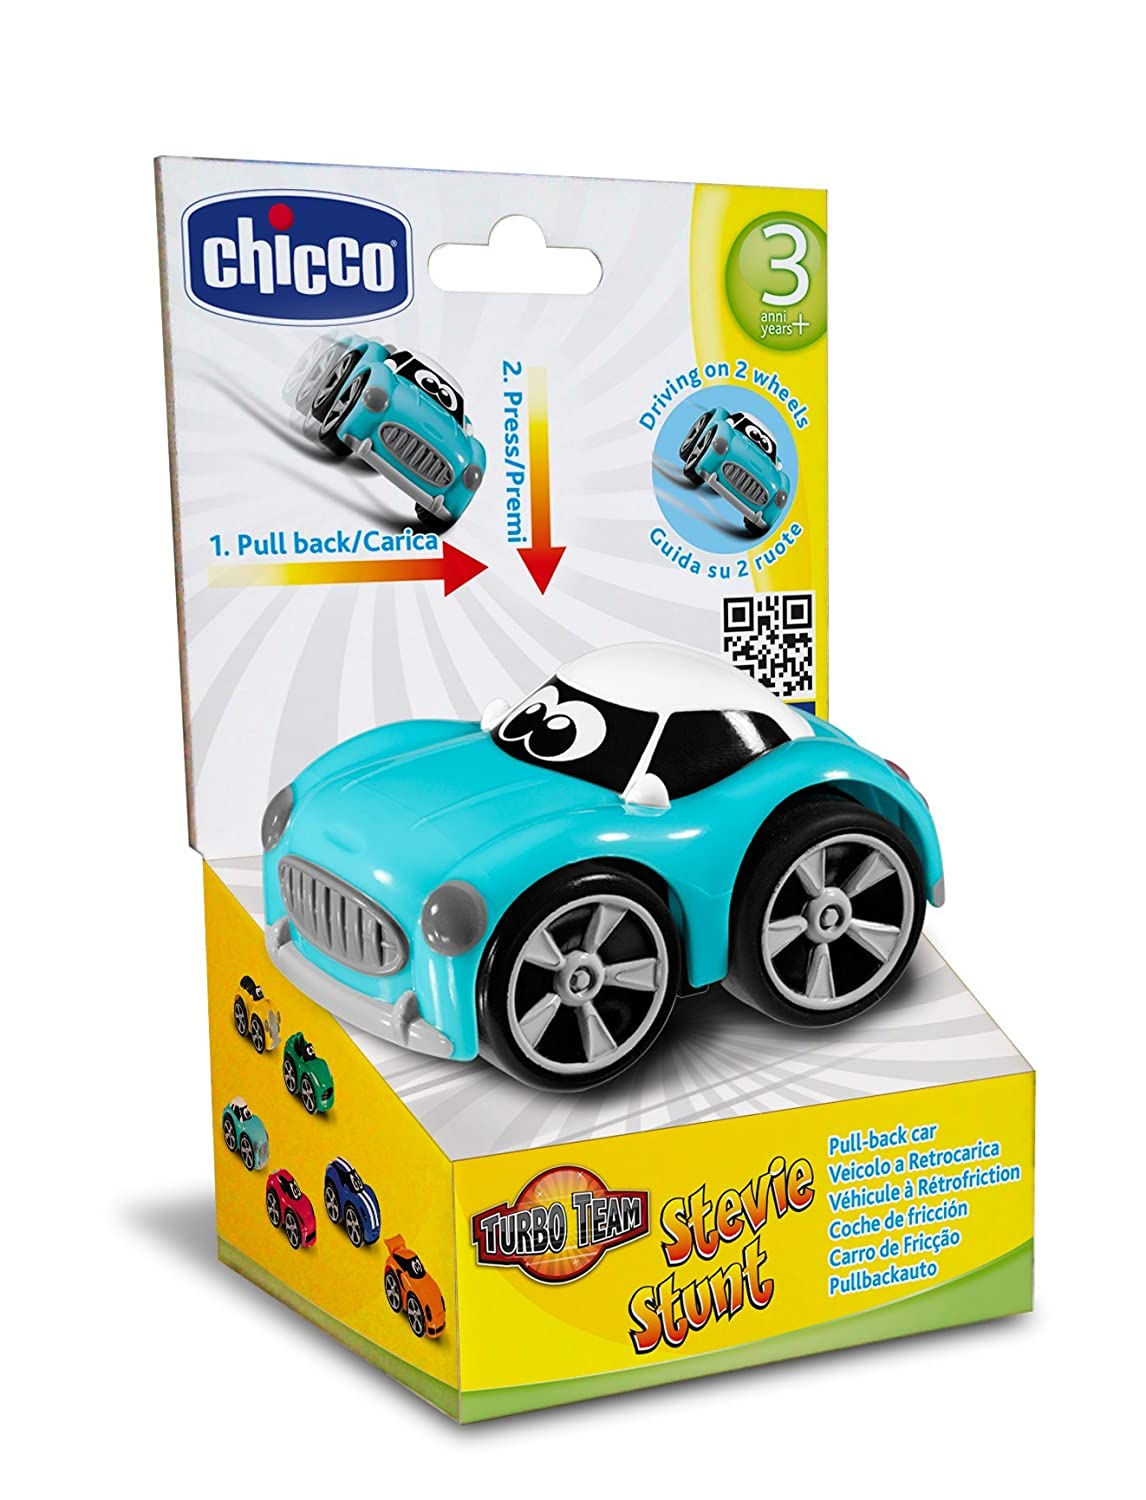 Amazon.com: Chicco Turbo Touch Game Stunt Color Blue: Health & Personal Care